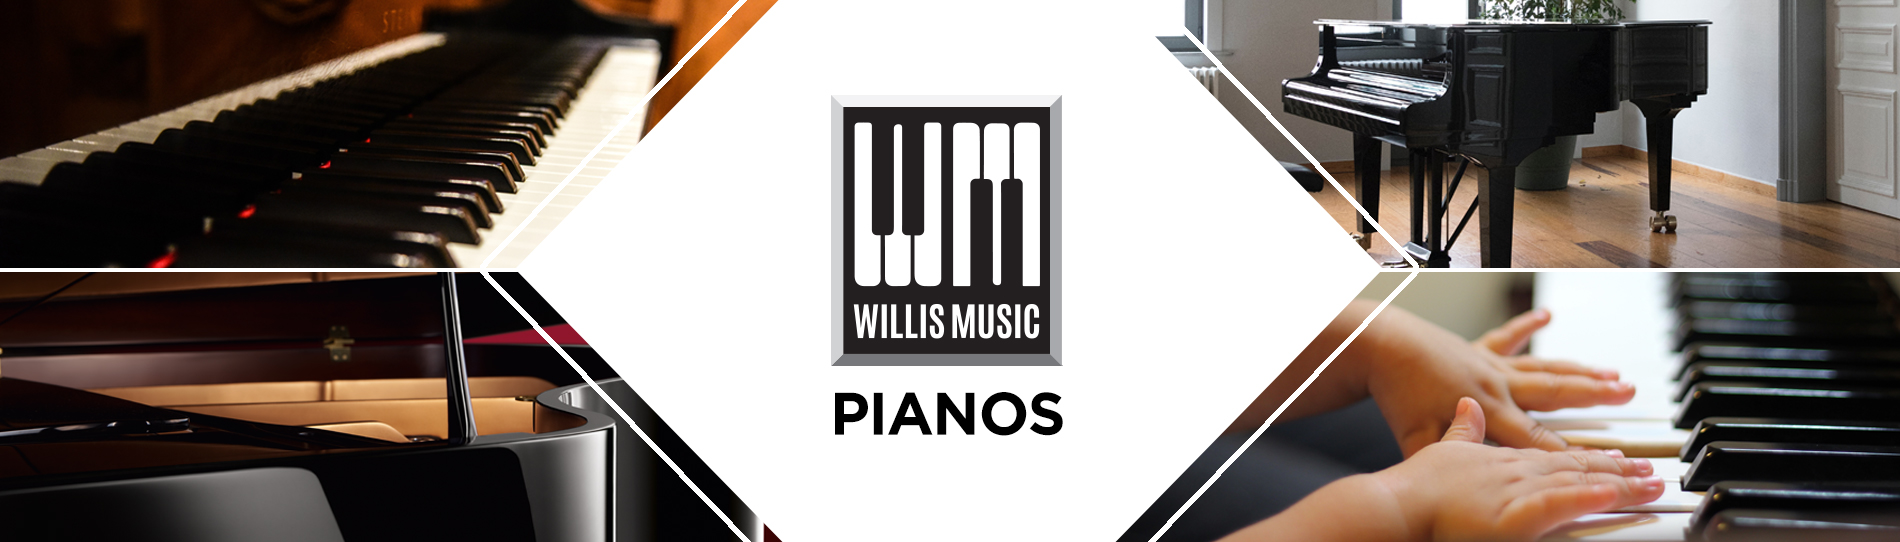 Piano Department Branding Banner